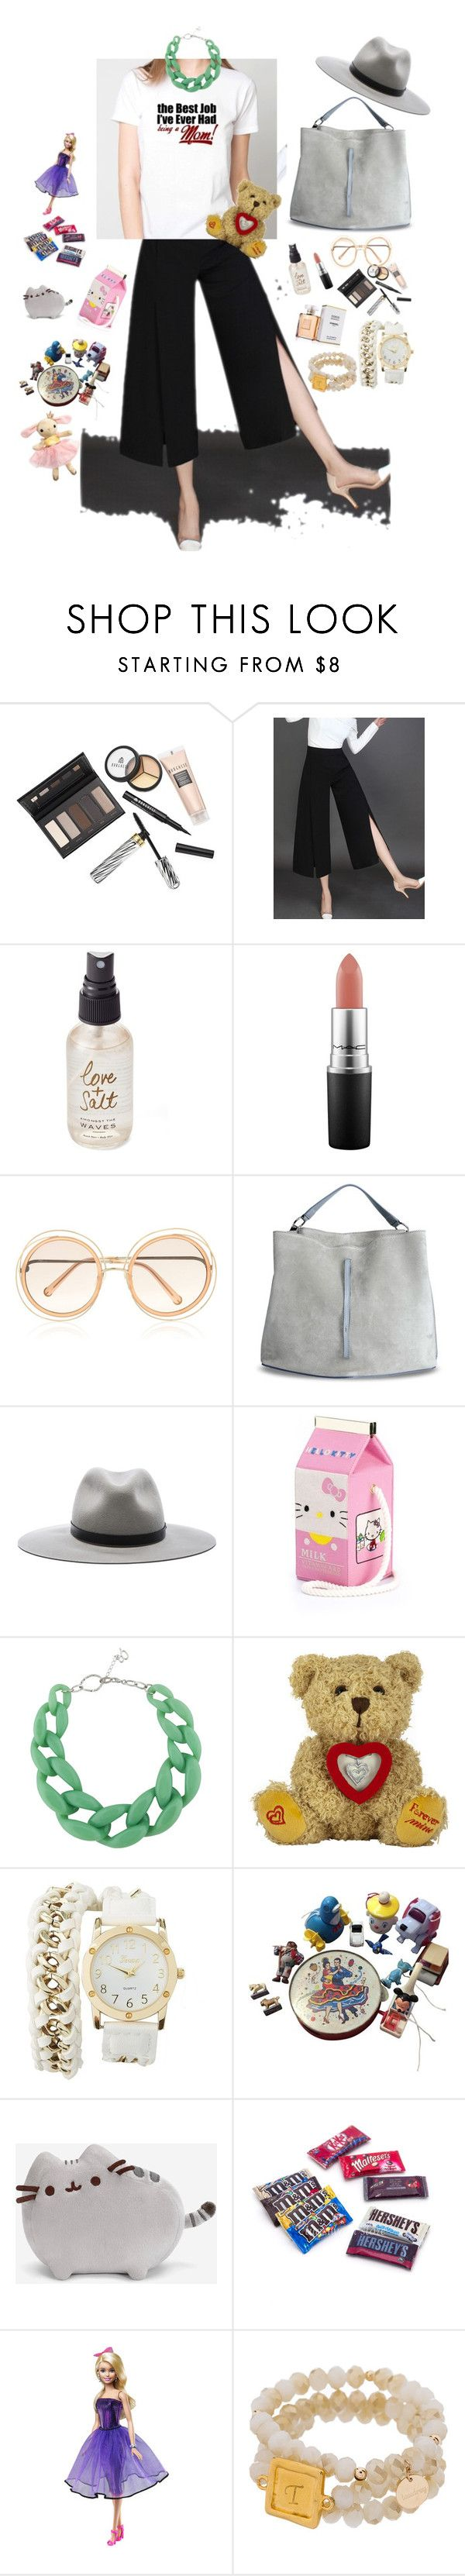 """""""best job ever#summerhats"""" by hellgirl ❤ liked on Polyvore featuring Borghese, Olivine, MAC Cosmetics, Chloé, Maison Margiela, rag & bone, Olympia Le-Tan, DIANA BROUSSARD, Charlotte Russe and Pusheen"""